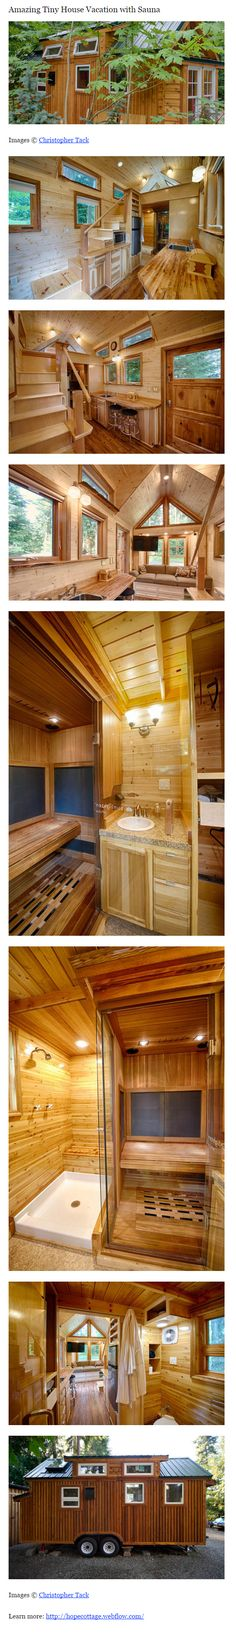 Amazing Tiny House Vacation with Sauna — http://tinyhousetalk.com/amazing-tiny-house-vacation-with-sauna/